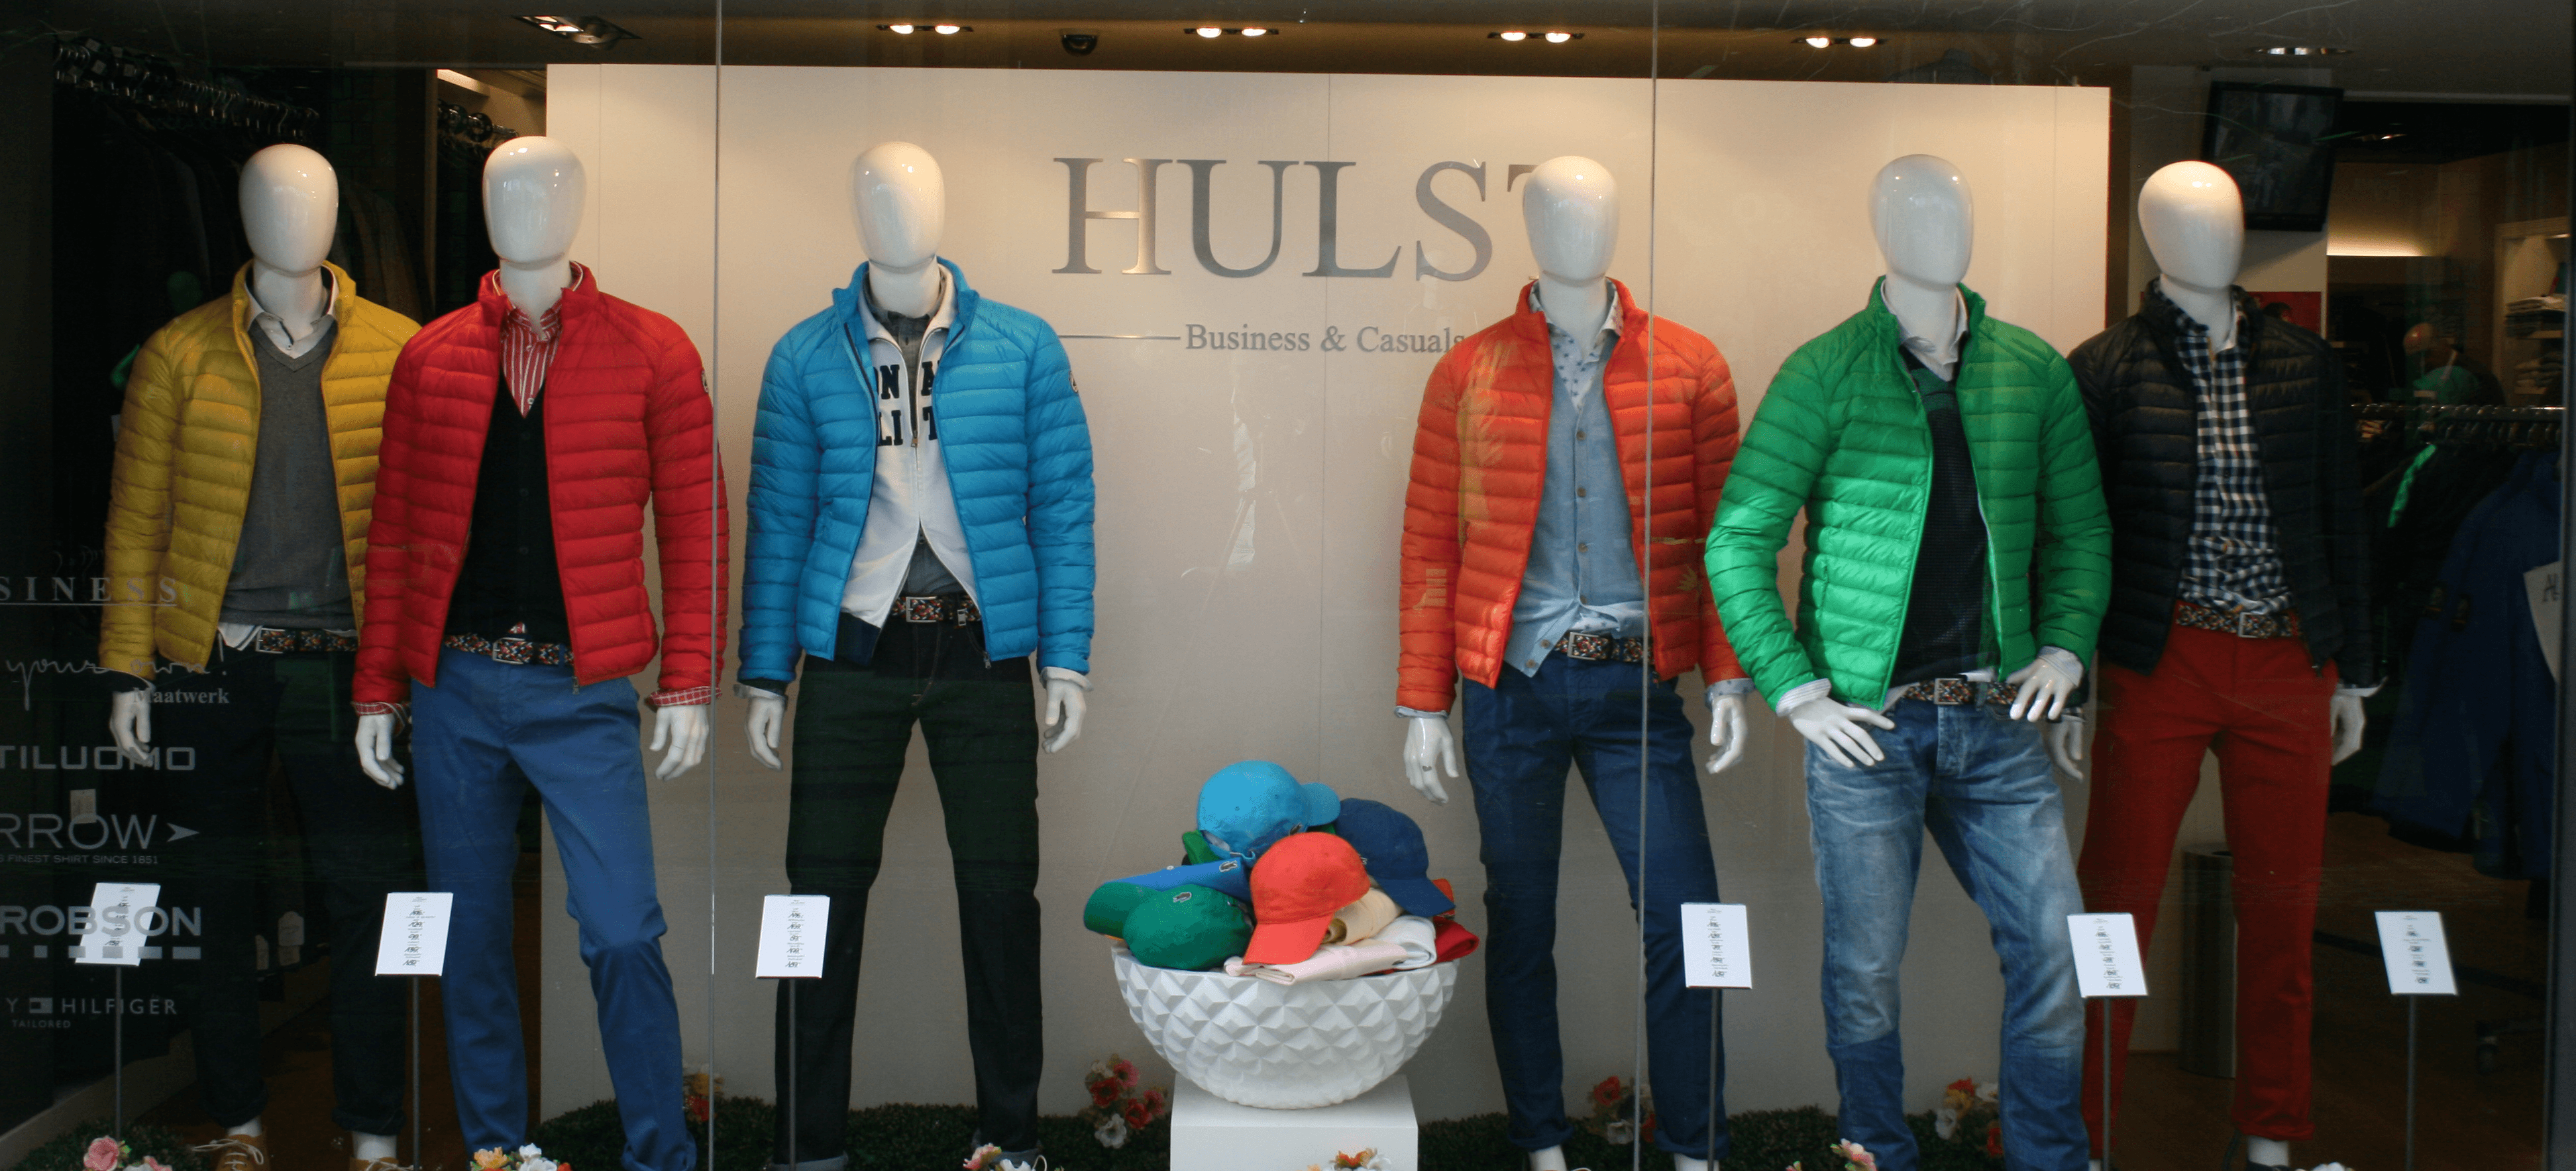 Hulst Business&Casuals